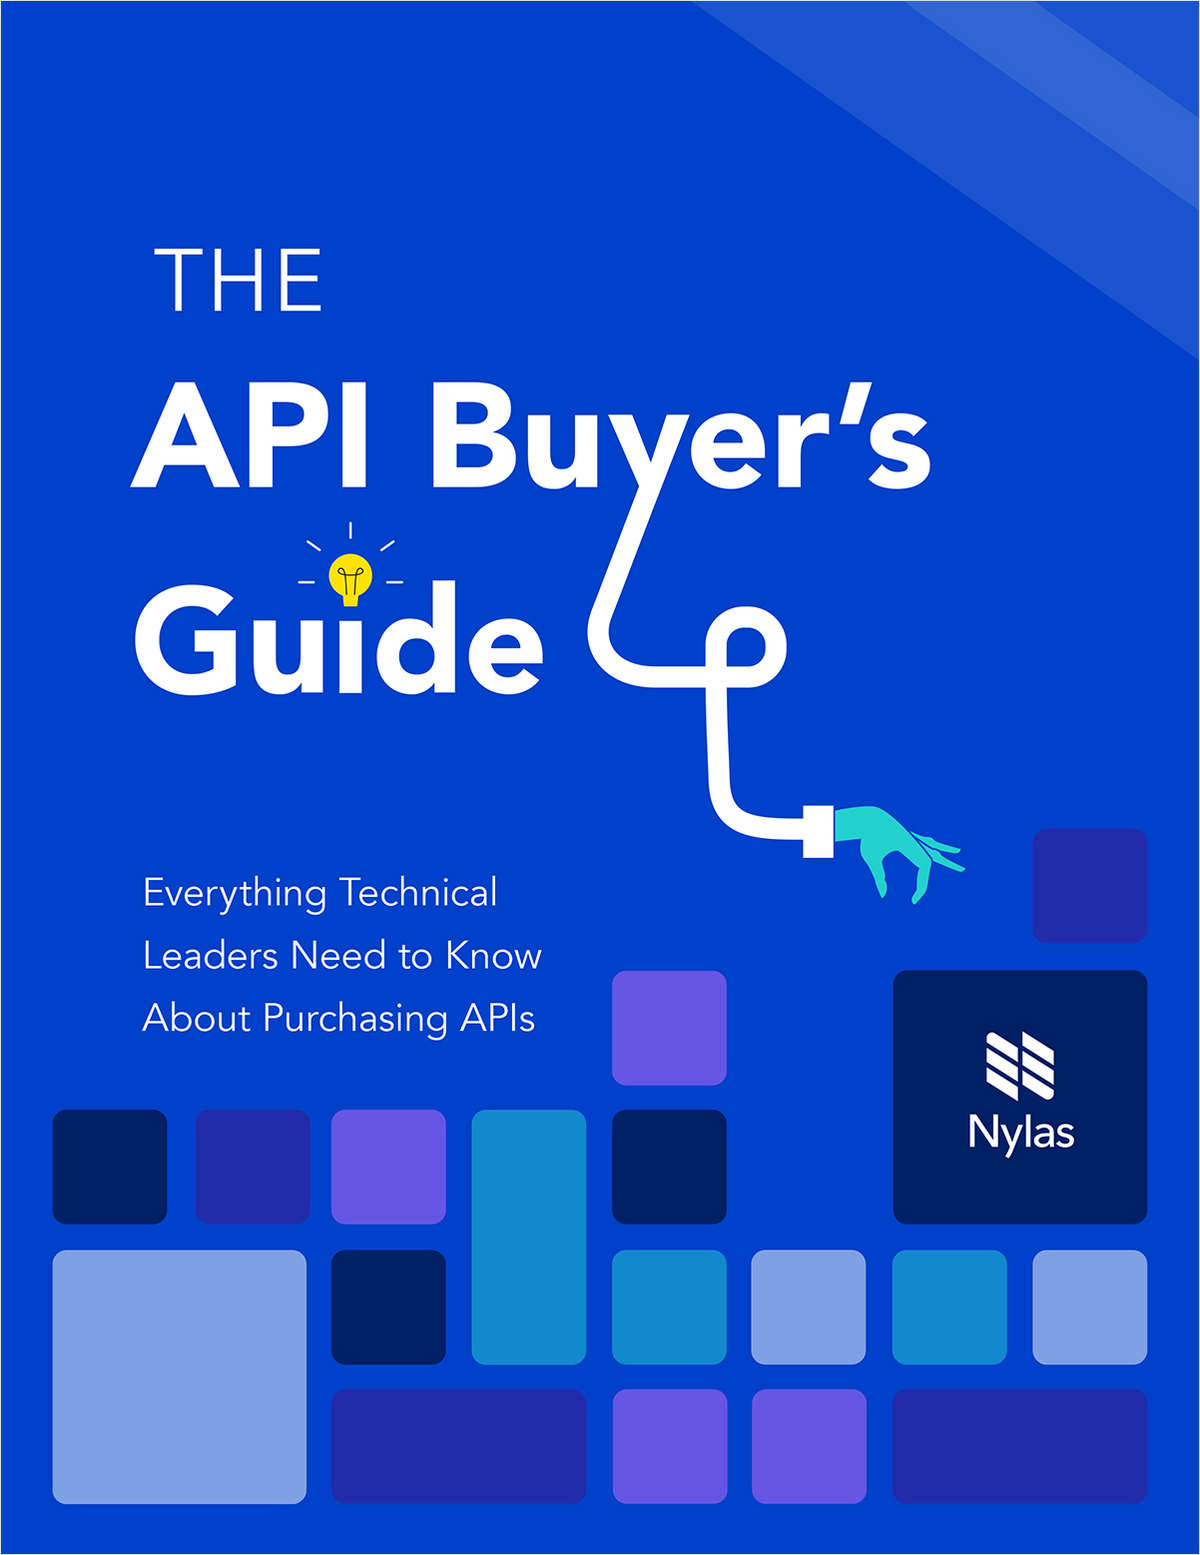 The API Buyer's Guide